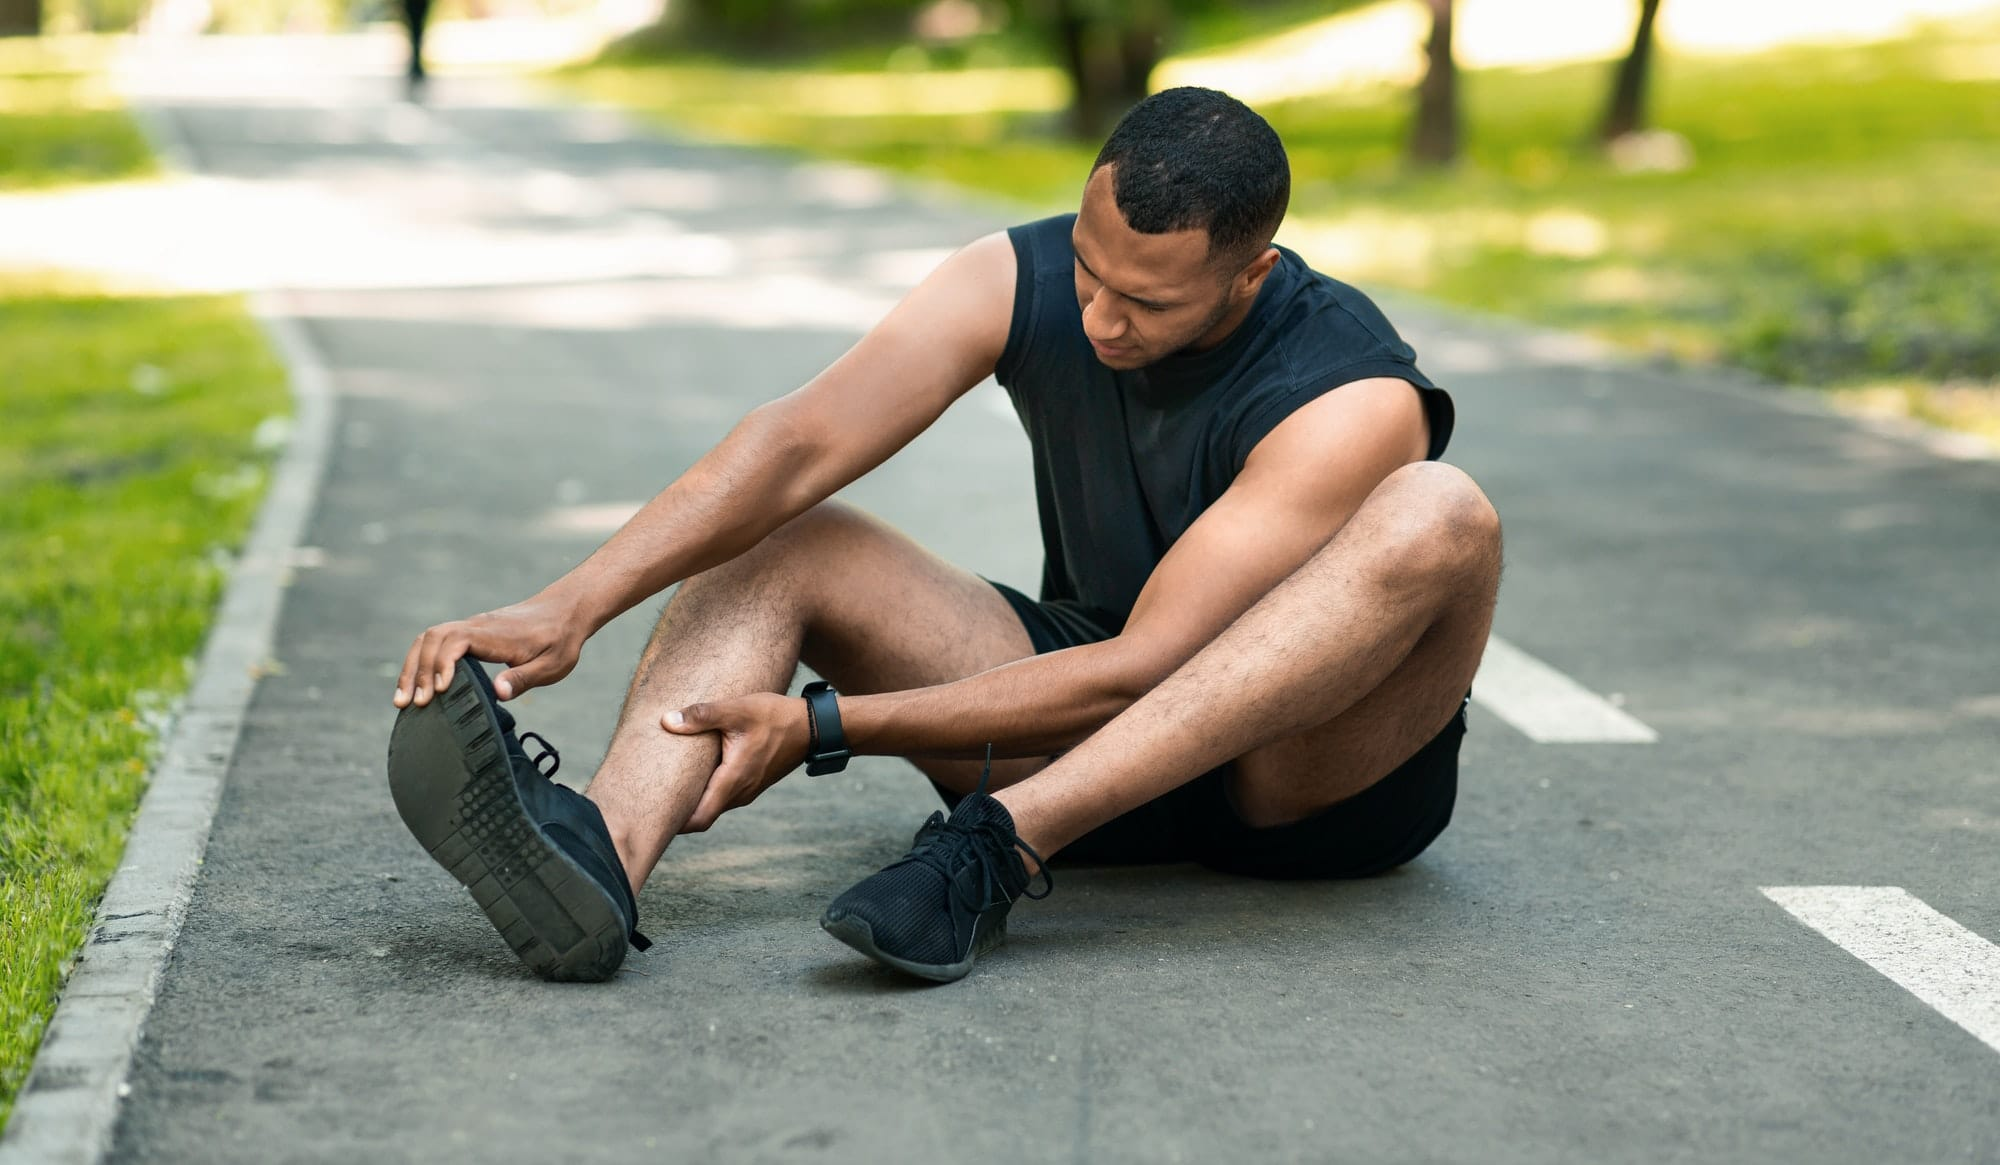 Sports injury. African American runner sitting on jogging track and feeling pain in his ankle